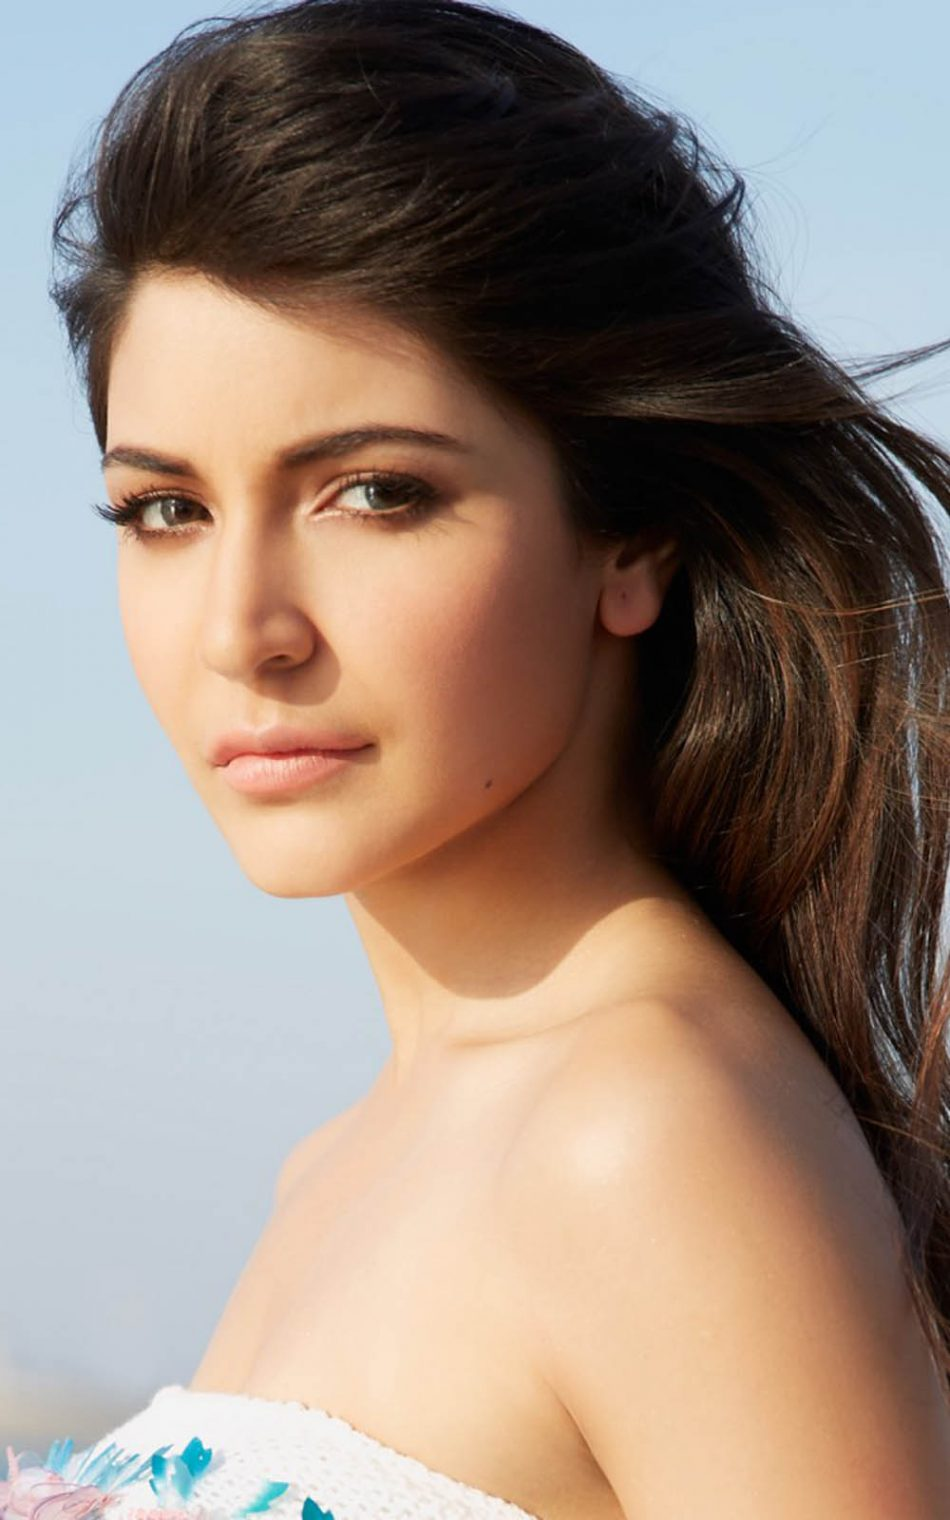 Anushka Sharma New Wallpapers in jpg format for free